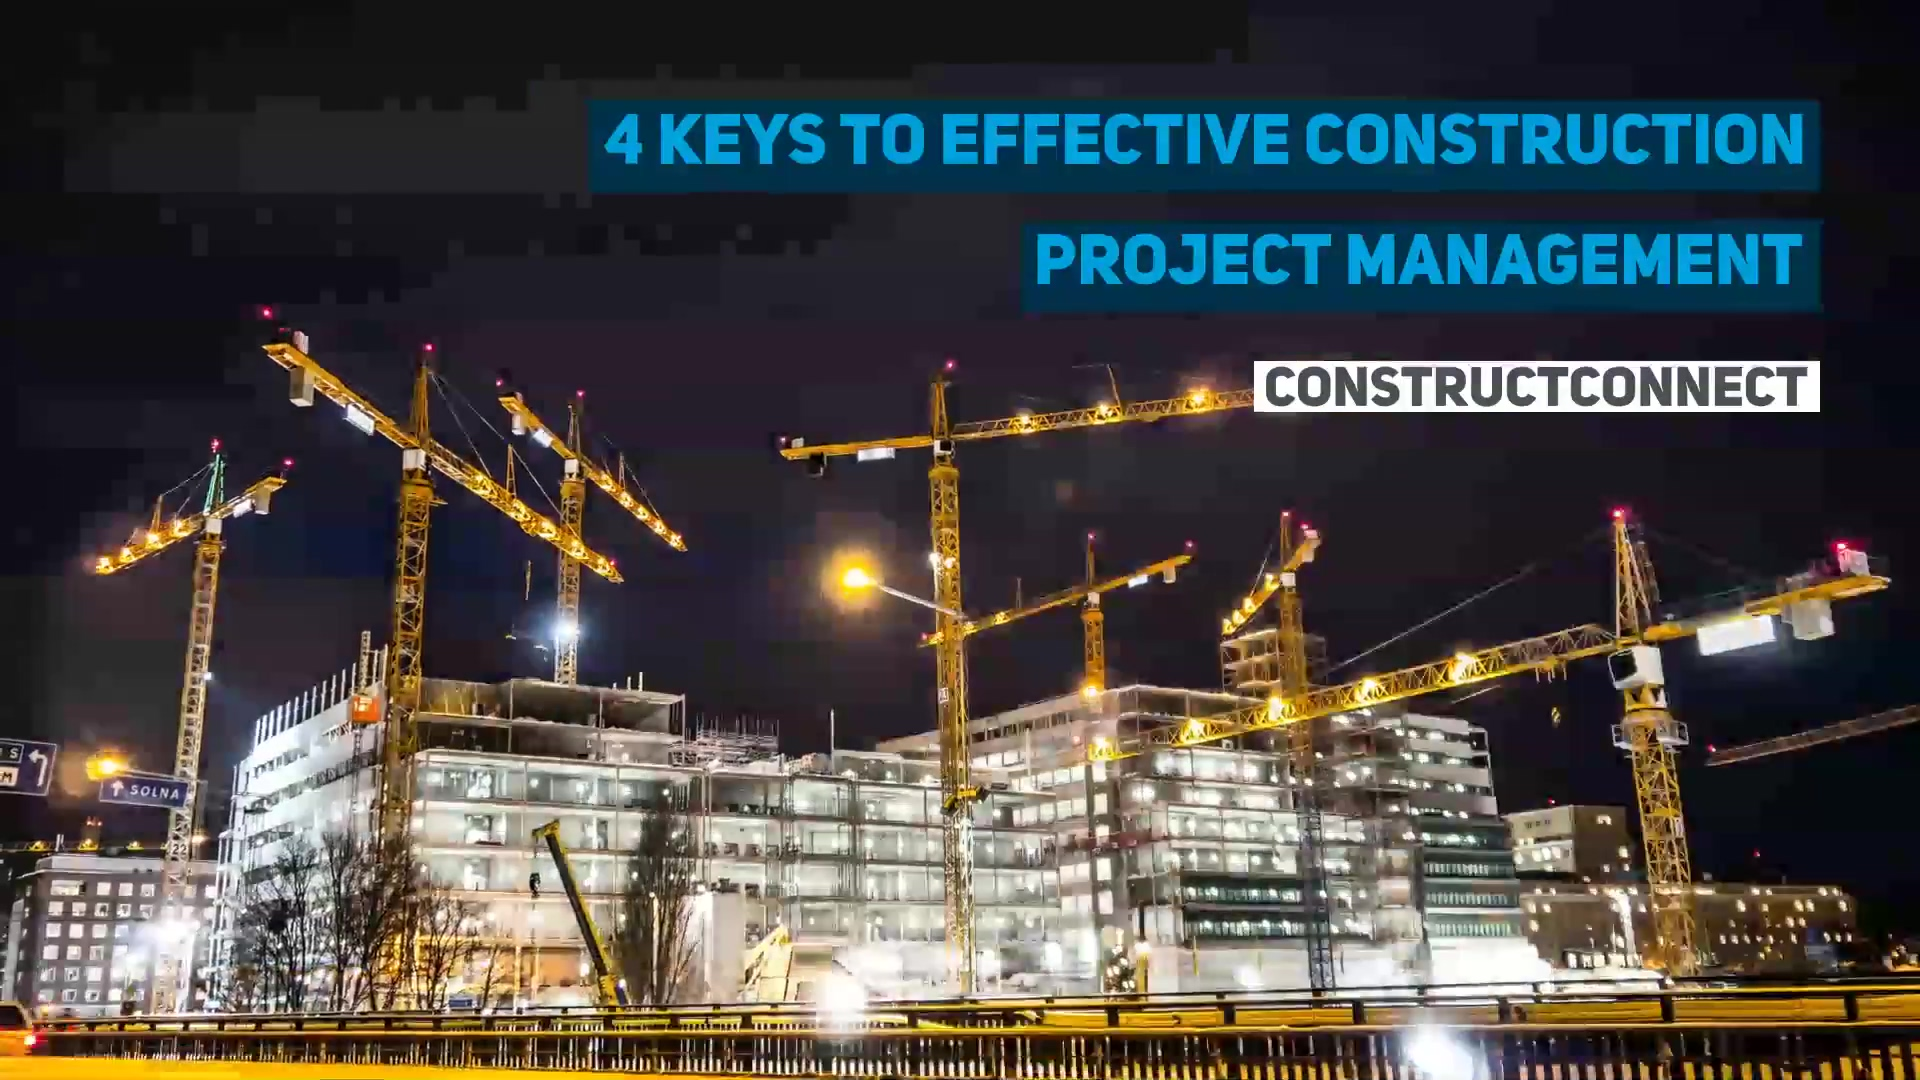 4_Keys_to_Effective_Construction_Project(1)